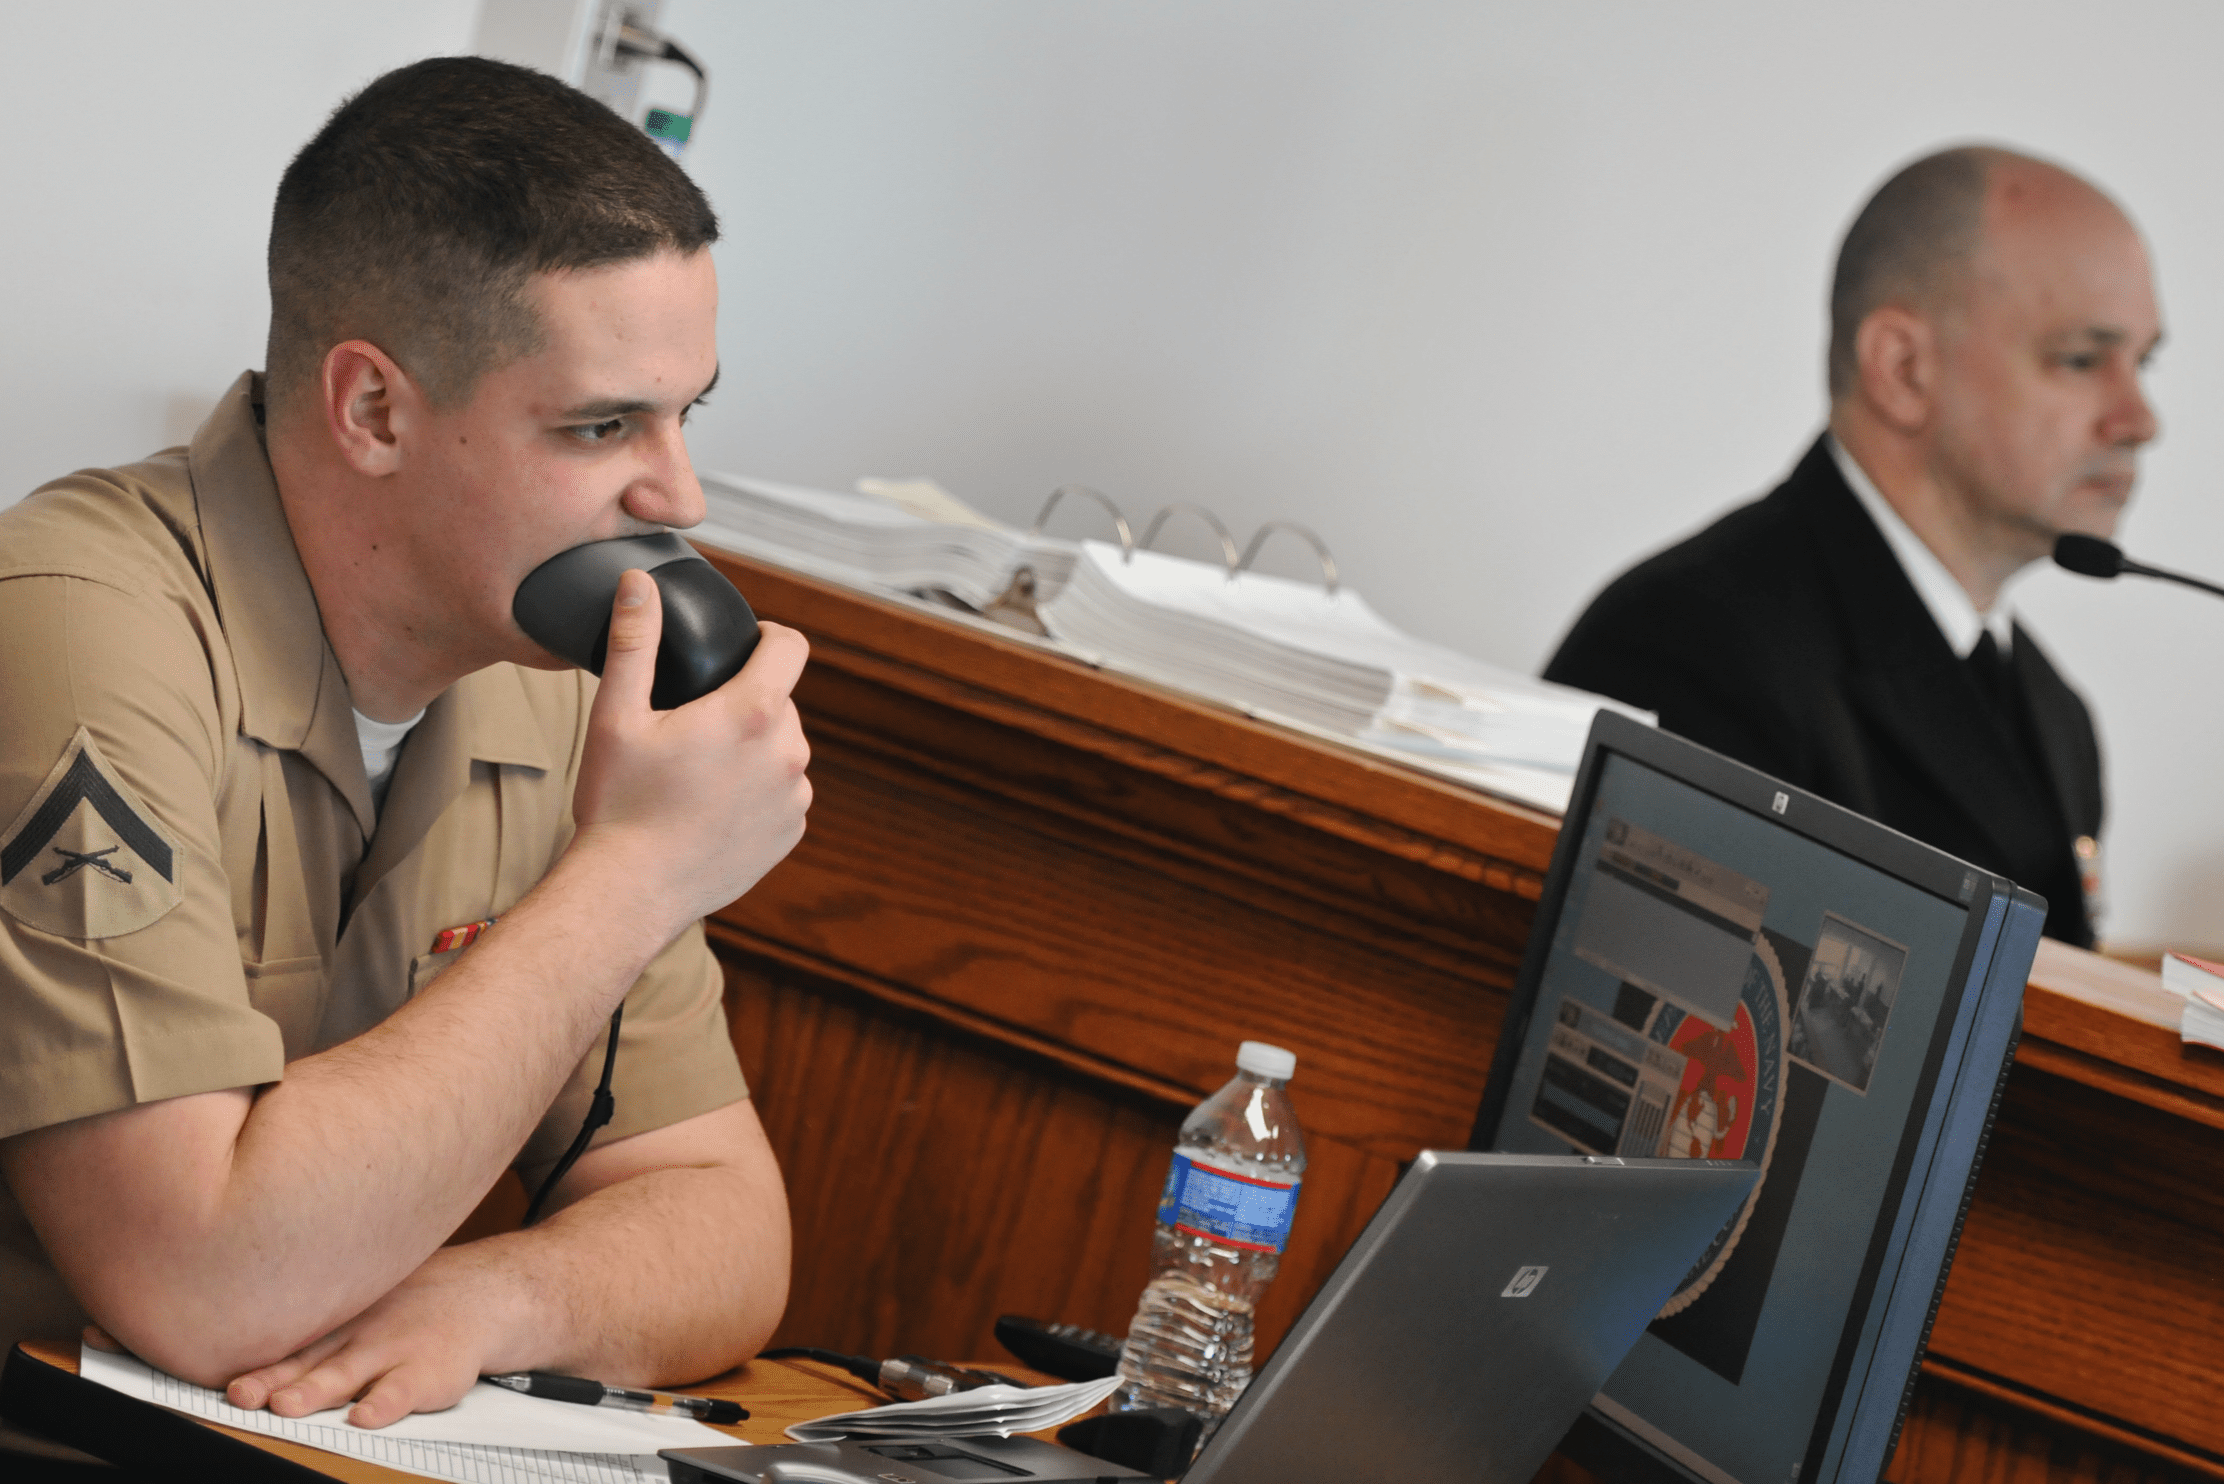 Lance Cpl. Matt Williamson, the court reporter, records testimony during a mock trial at the Naval Justice School (NJS). The mock trial is the final graded event for students at the NJS. U.S. Navy photo by Mass Communication Specialist 2nd Class Eric Dietrich/Released. U.S. Naval War College, CC BY 2.0, no changes.